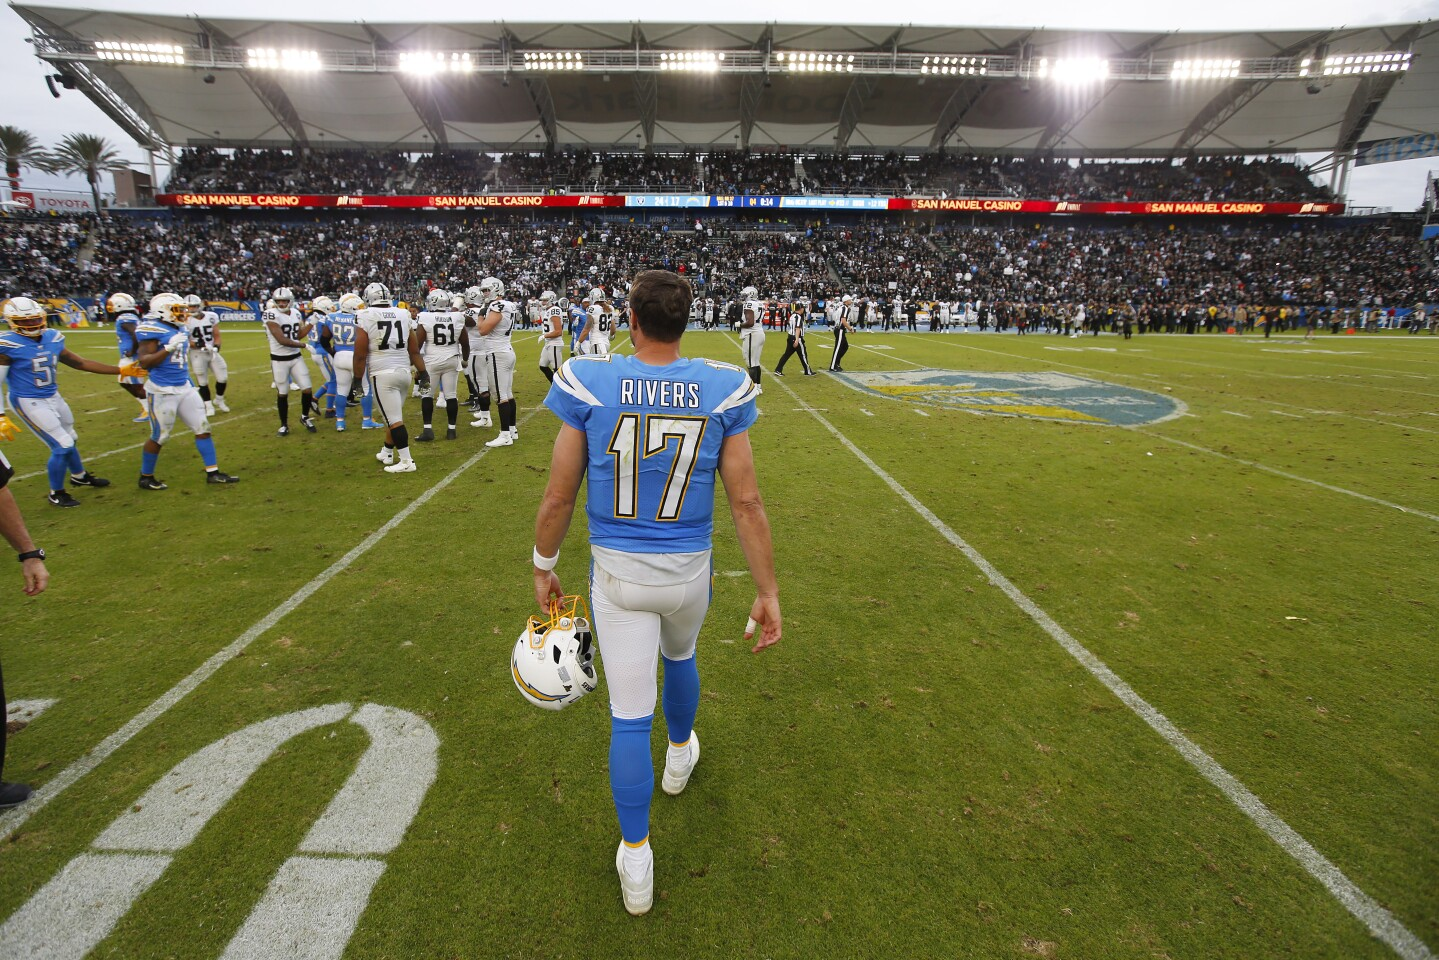 Los Angeles Chargers quarterback Philip Rivers walks off the field after a 24-17 loss to the Oakland Raiders in Carson on Dec. 22, 2019.